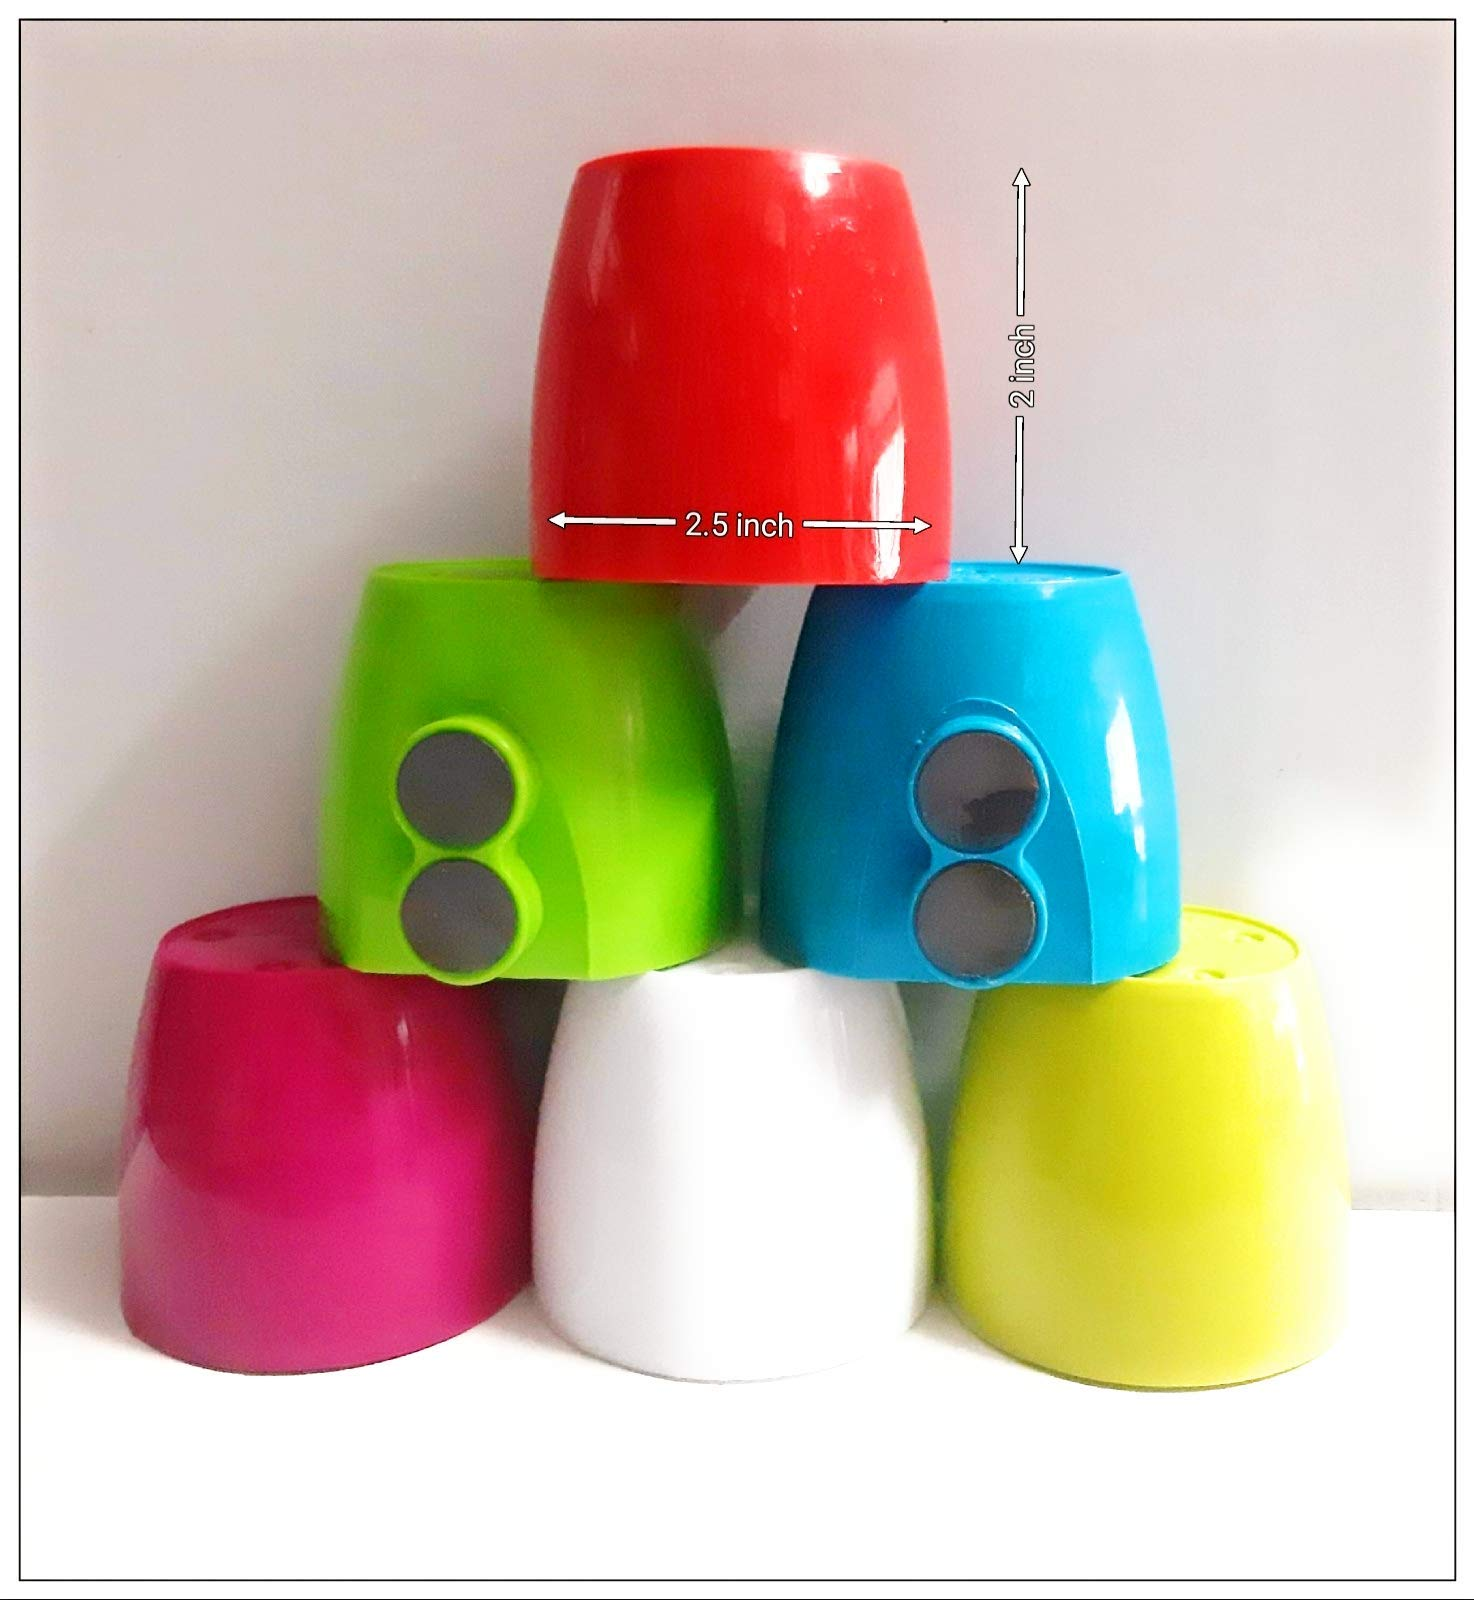 Nayi Umang Fridge Small Magnet Pot for Window/Door (Multicolour) - Pack of 6 Magnet Pot with Free 6 net Pot. (B07YSL638B) Amazon Price History, Amazon Price Tracker